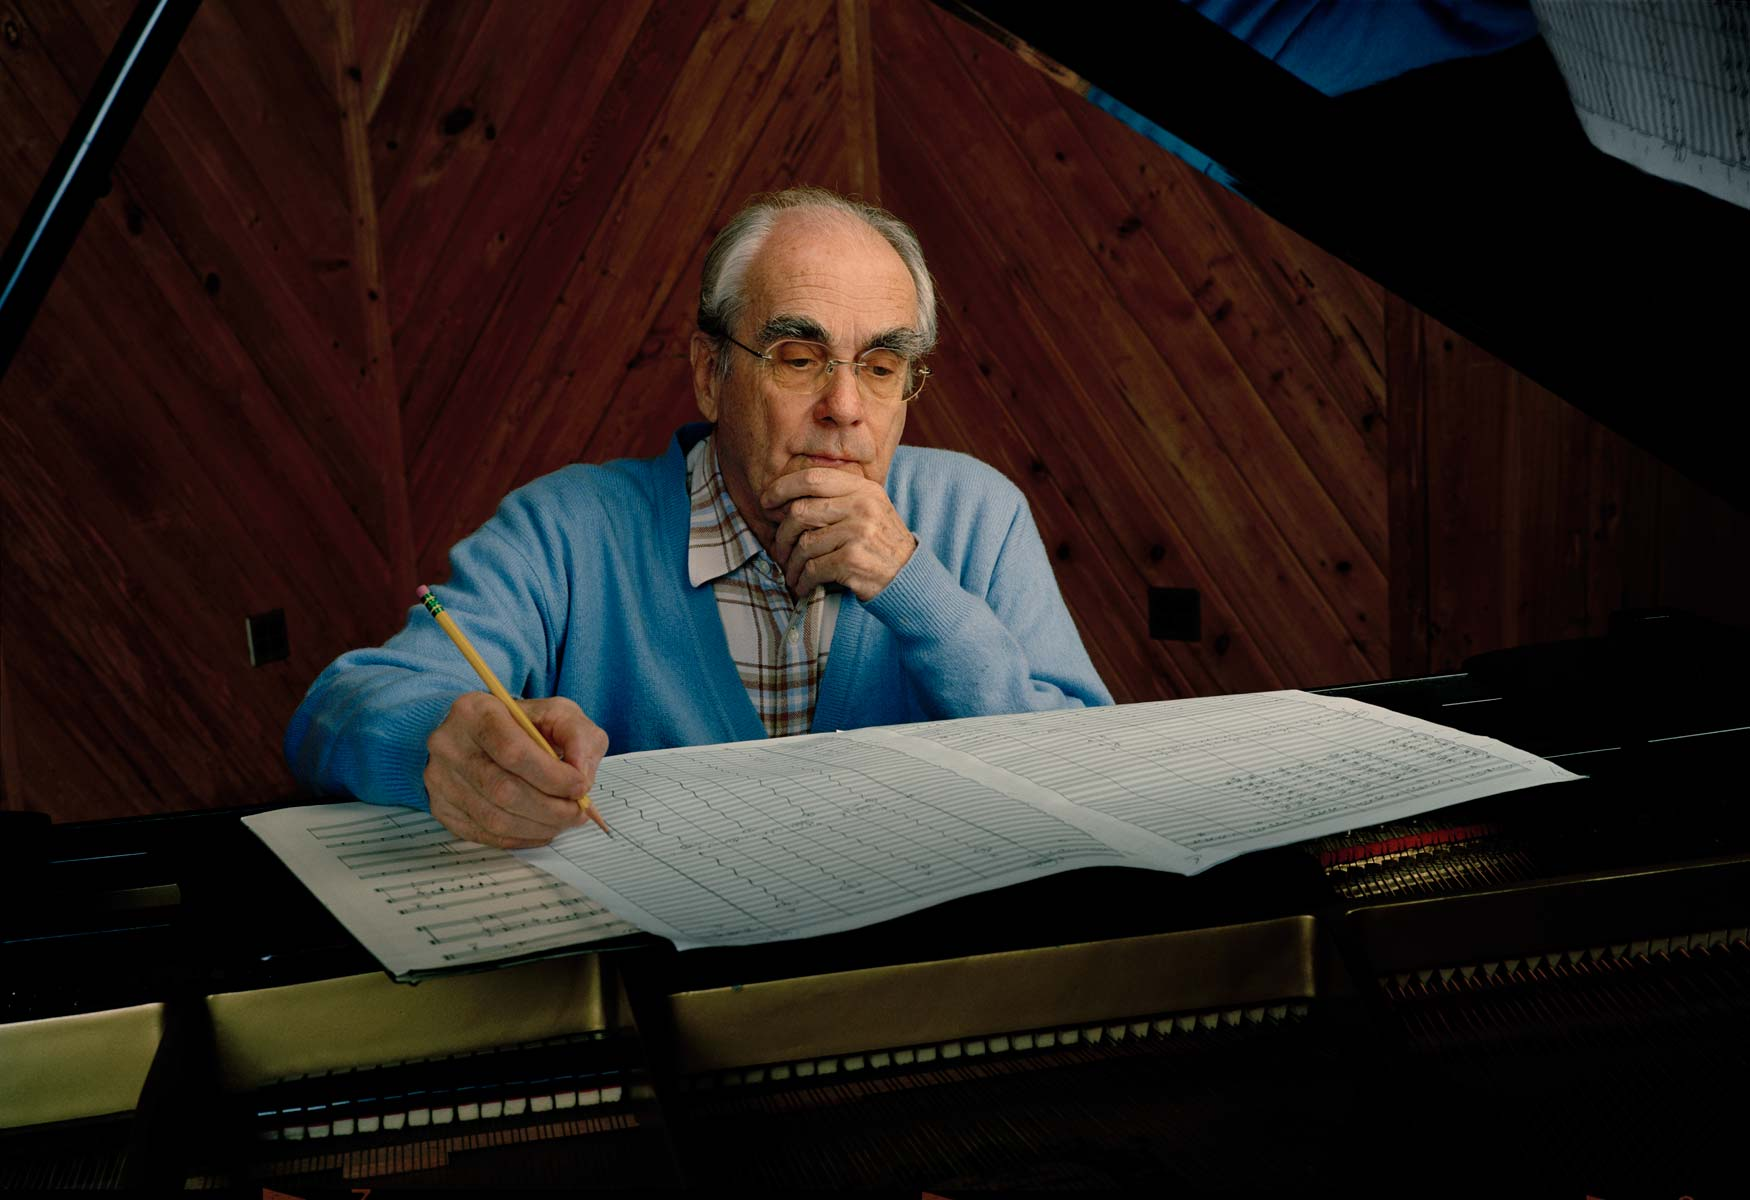 michel_legrand_master copy